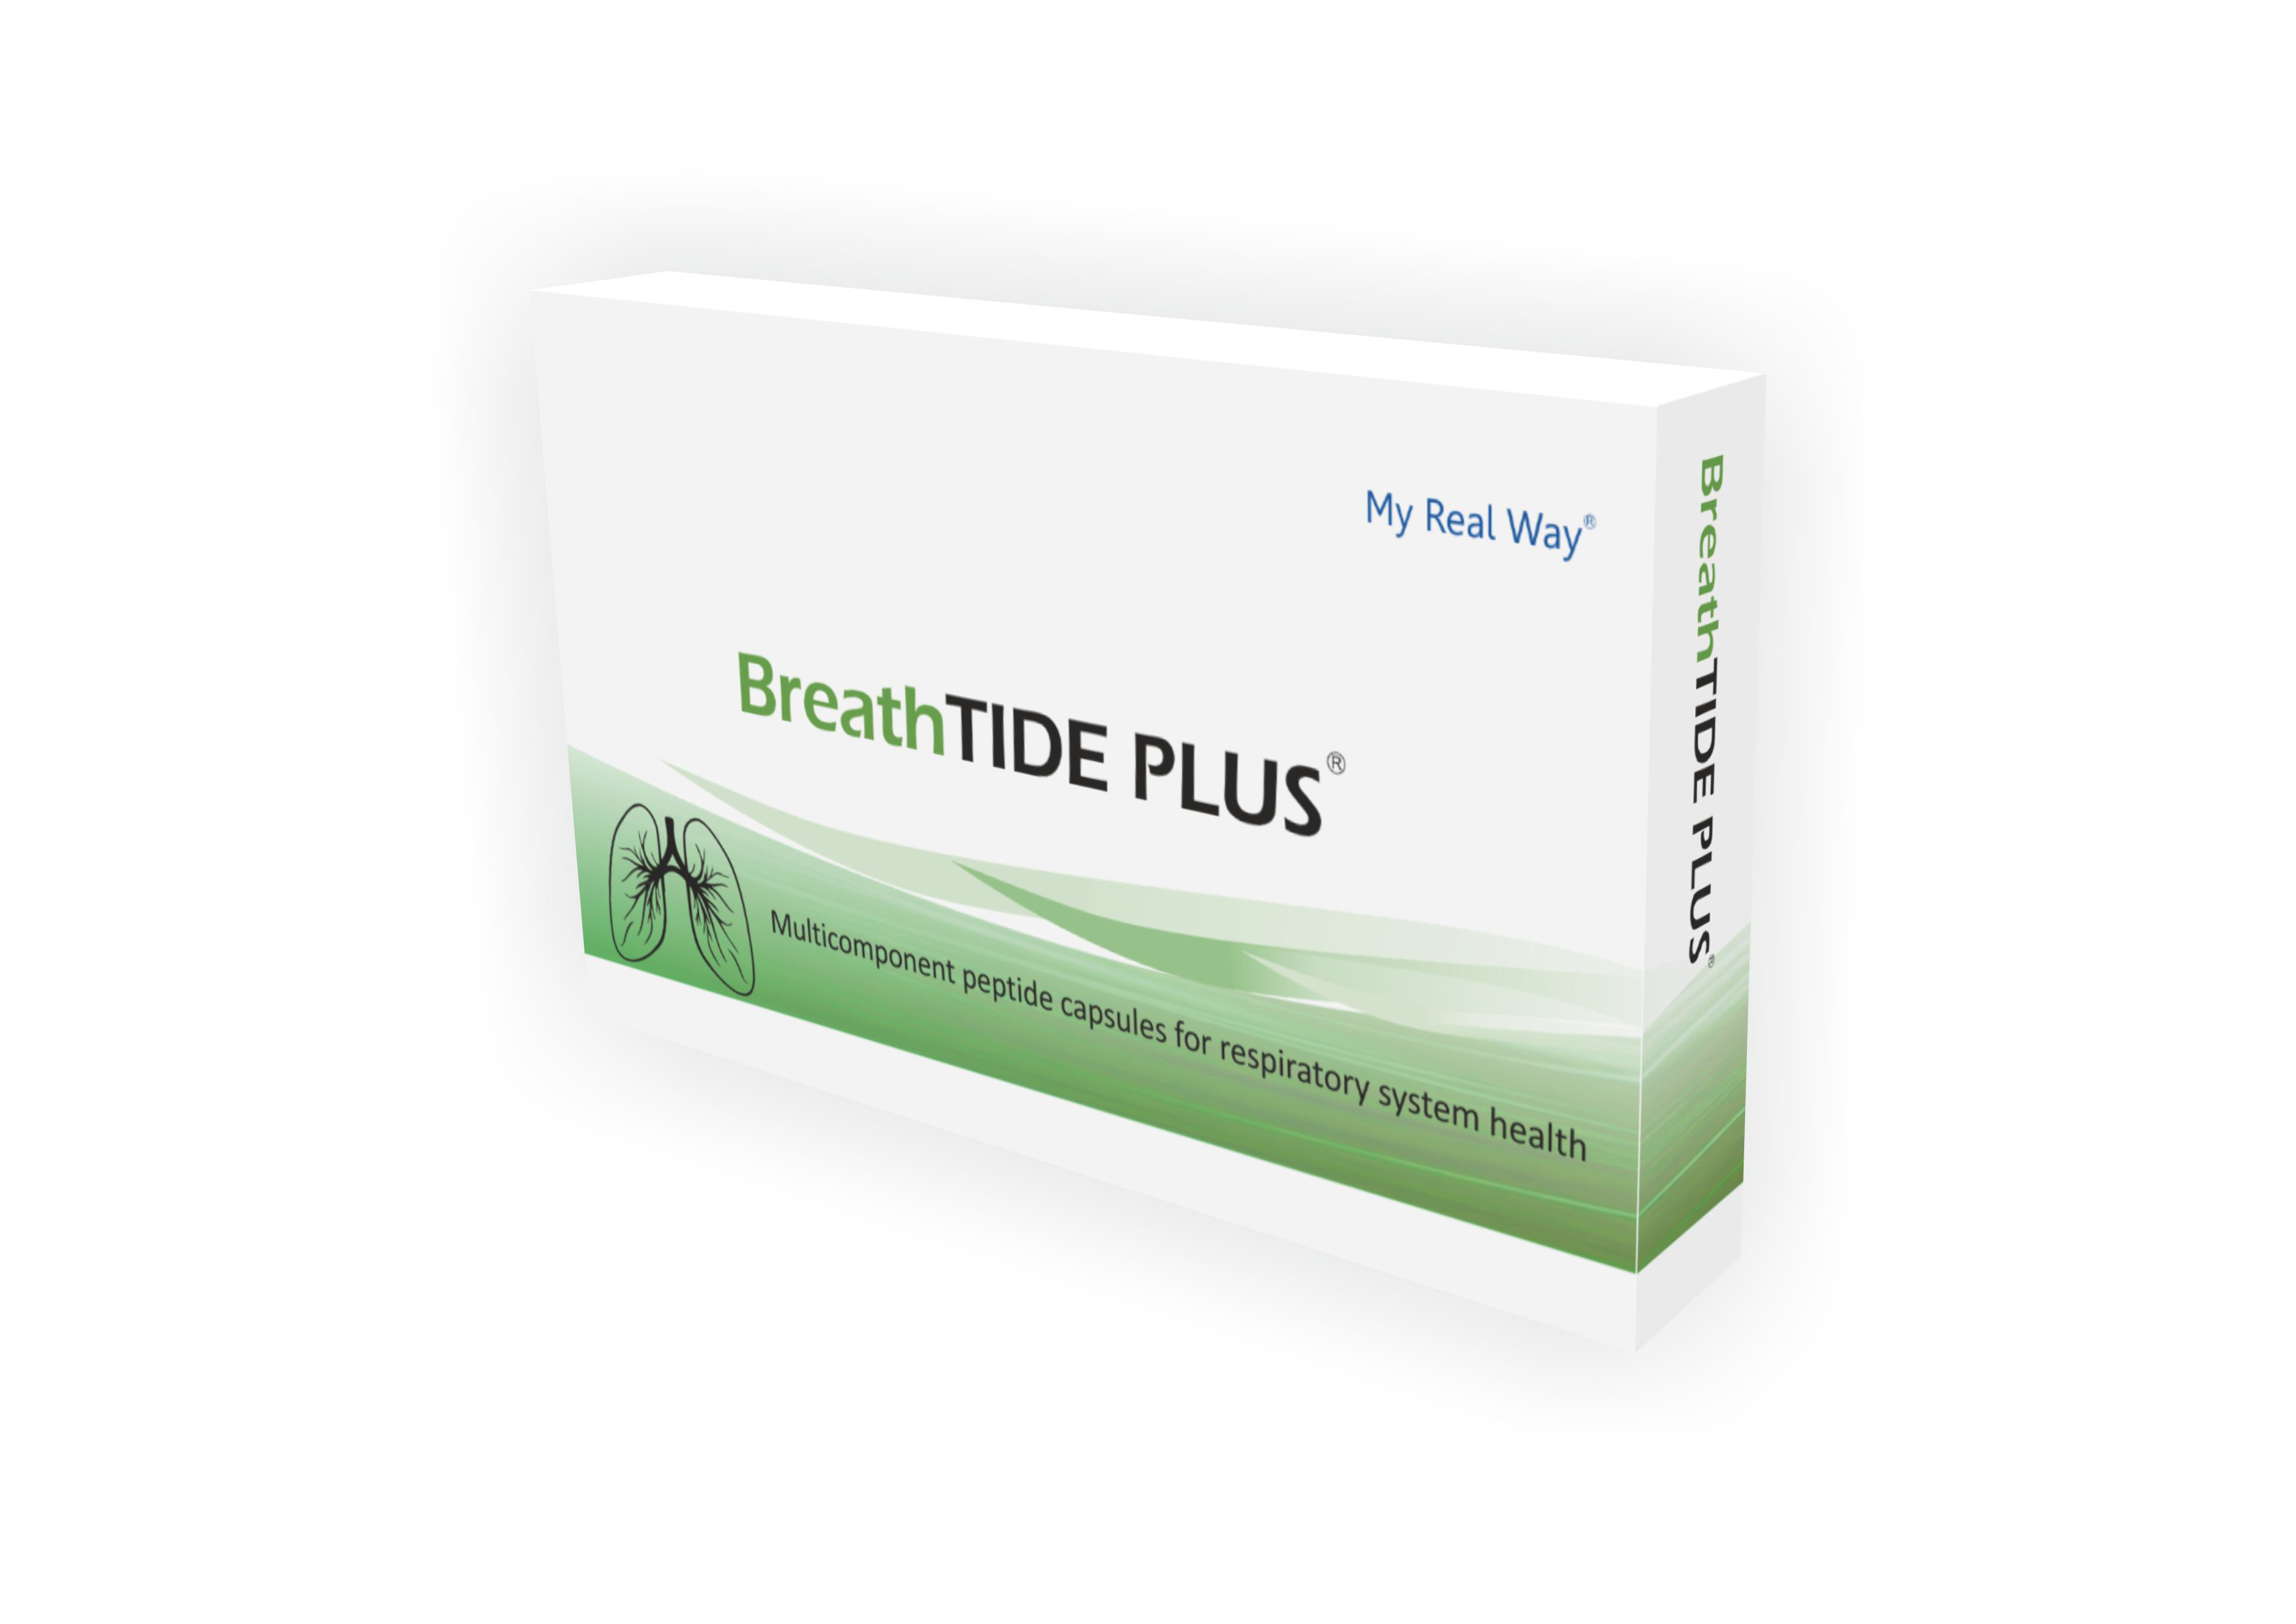 BreathTIDE PLUS